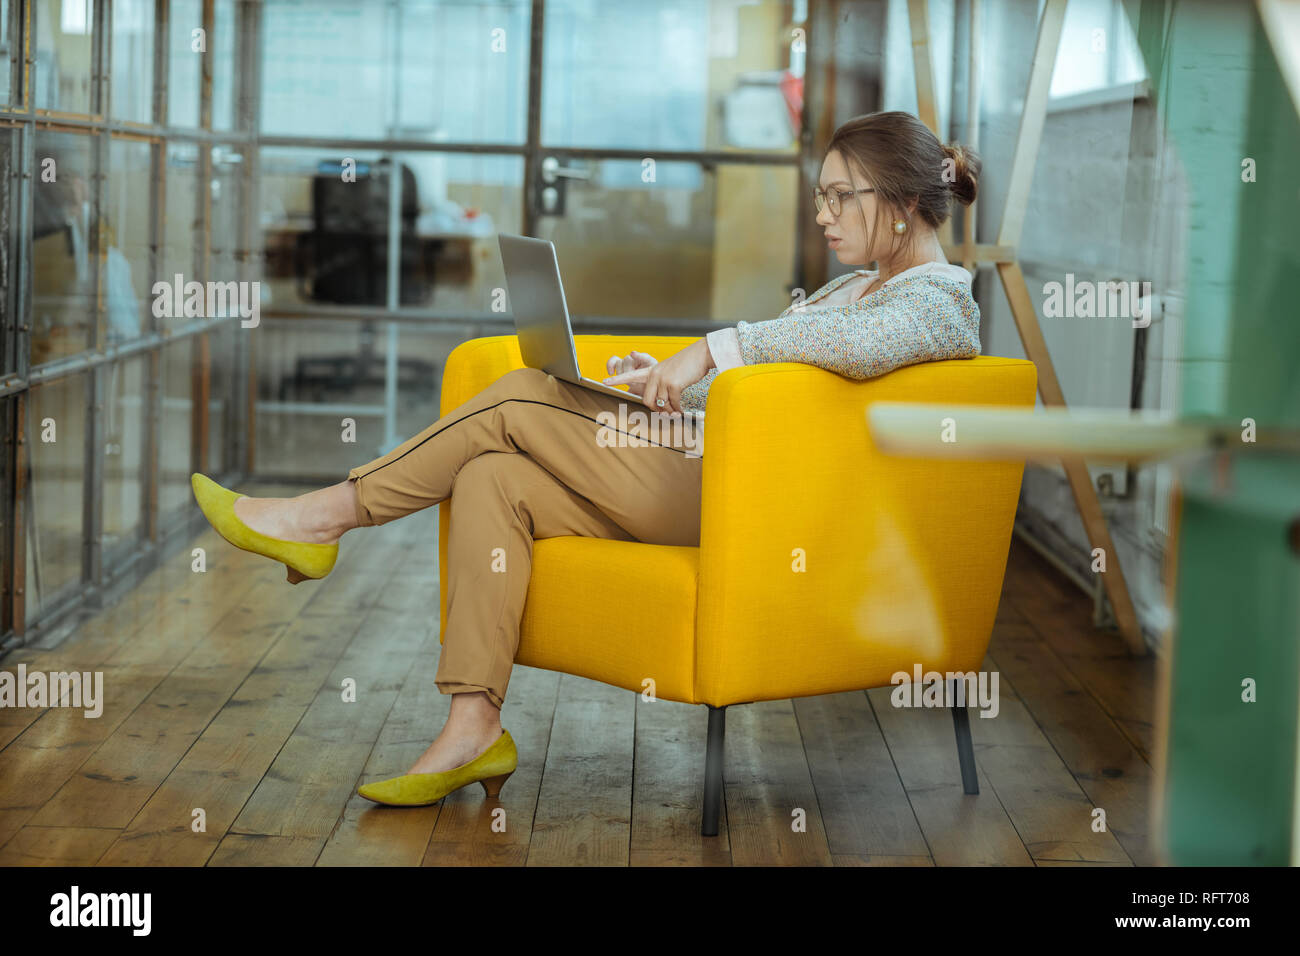 Dark-haired businesswoman sitting in nice comfy yellow armchair - Stock Image